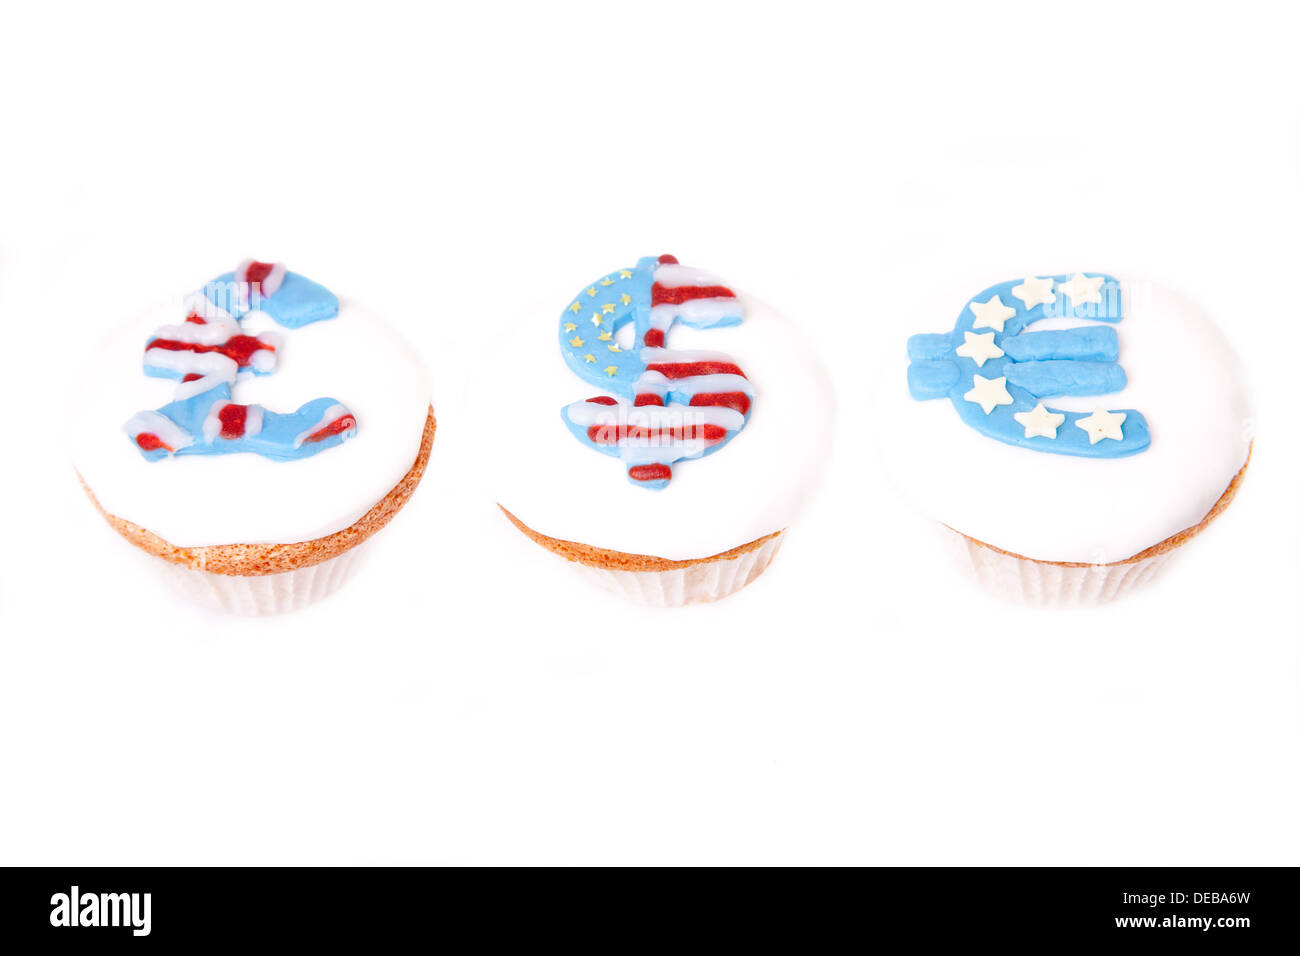 pound dollar and euro signs on cup cakes on white background stock photo alamy https www alamy com pound dollar and euro signs on cup cakes on white background image60485793 html